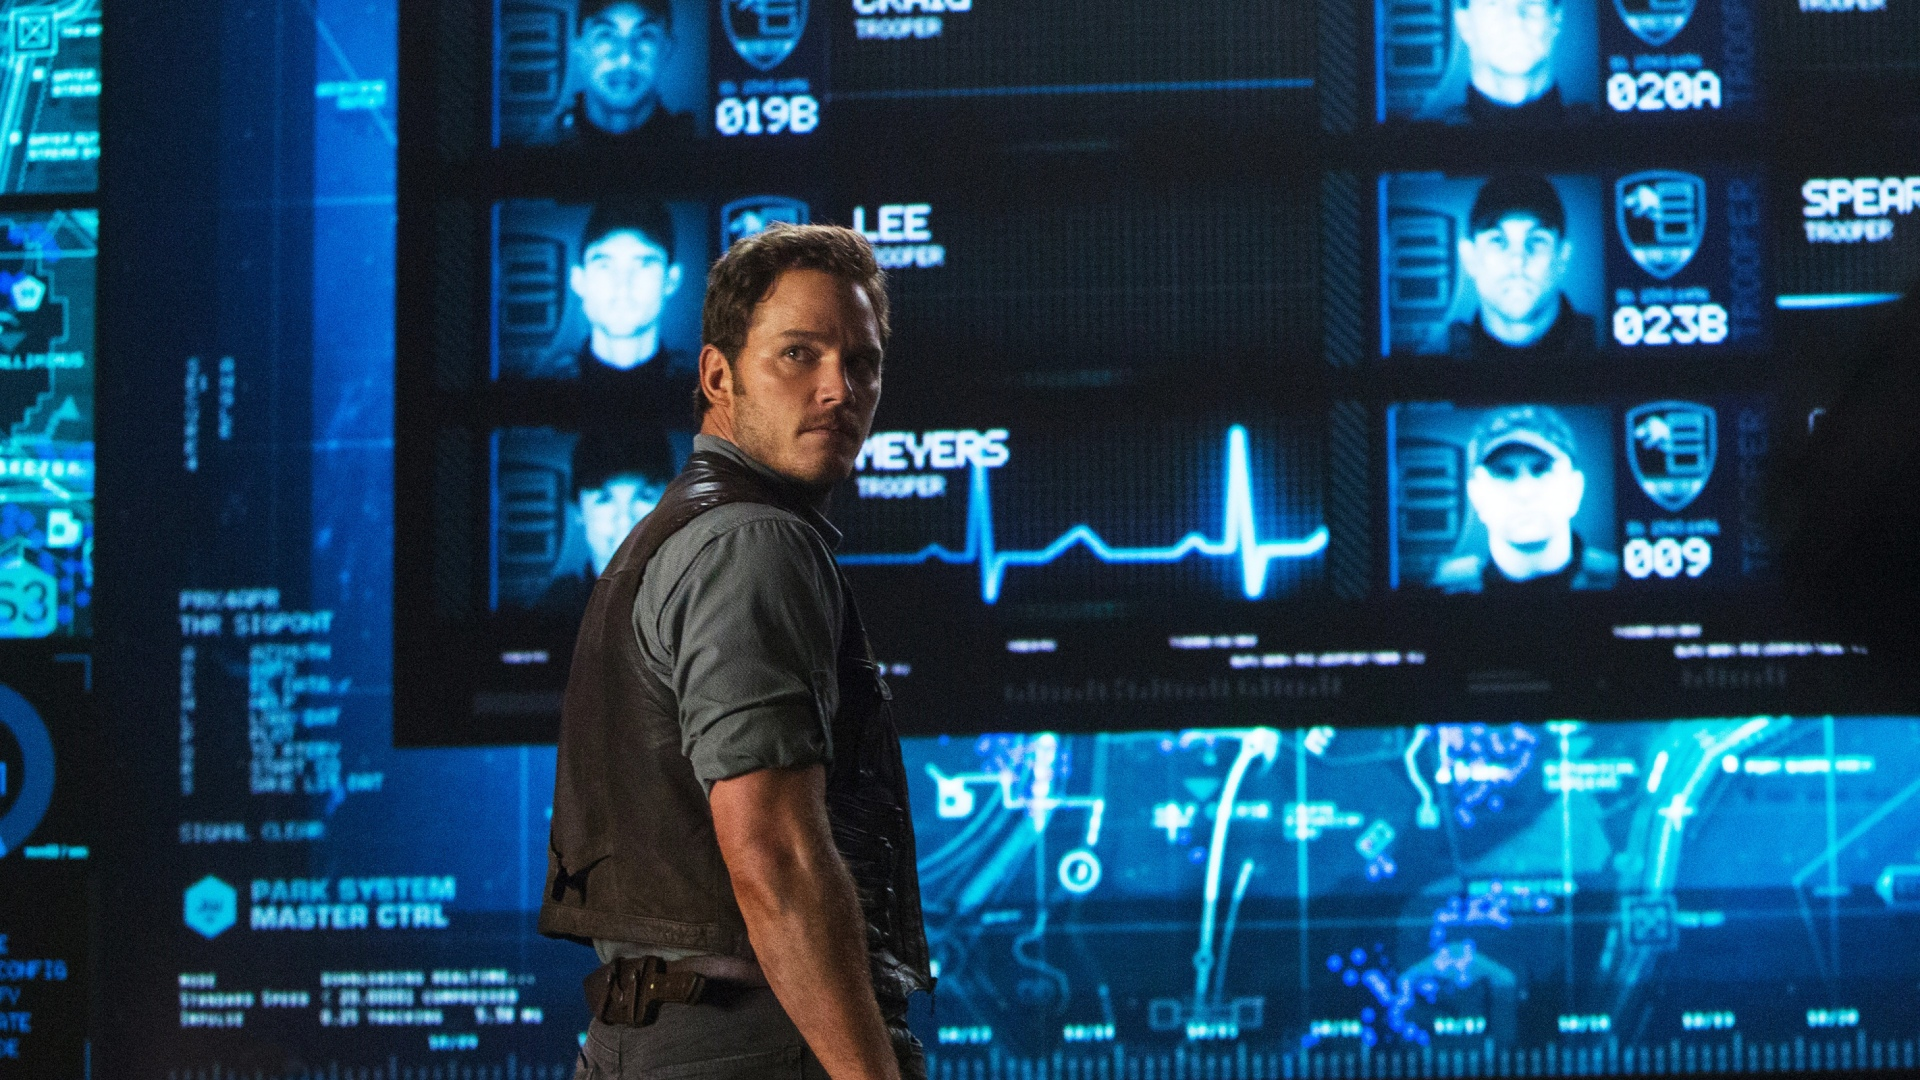 Jurassic_world_Cinema_2015_4.jpg